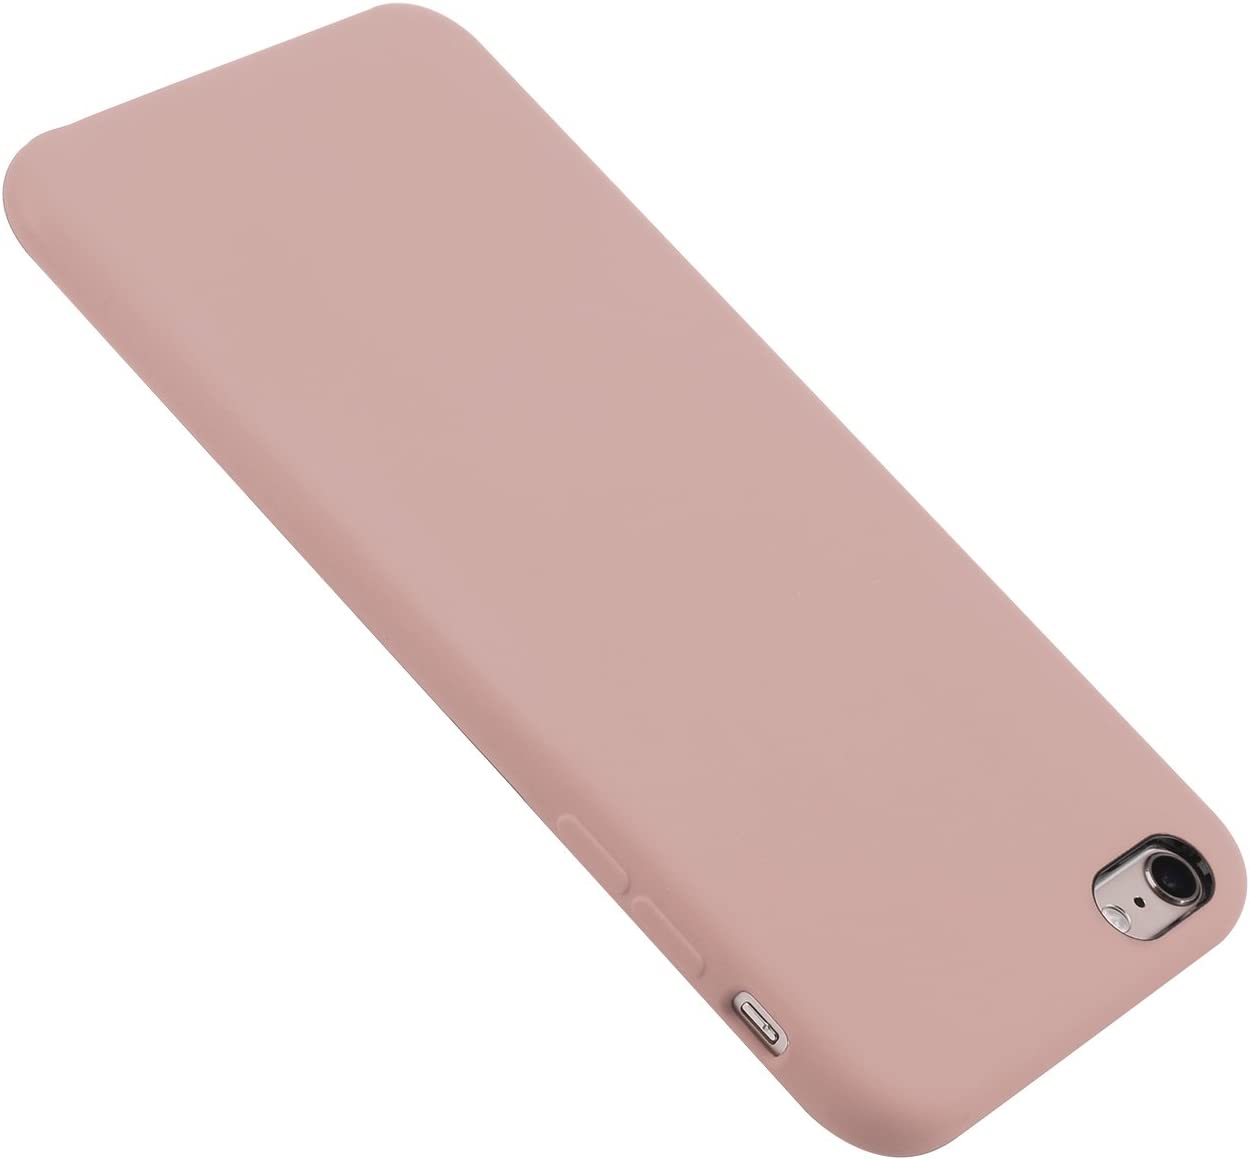 iPhone 6 Plus/6s Plus Case Liquid Silicone Gel Rubber Case,Full Body Protection Shockproof Cover Case with Soft Microfiber Cloth Lining Cushion for Apple iPhone 6P/6sP, (Pink)